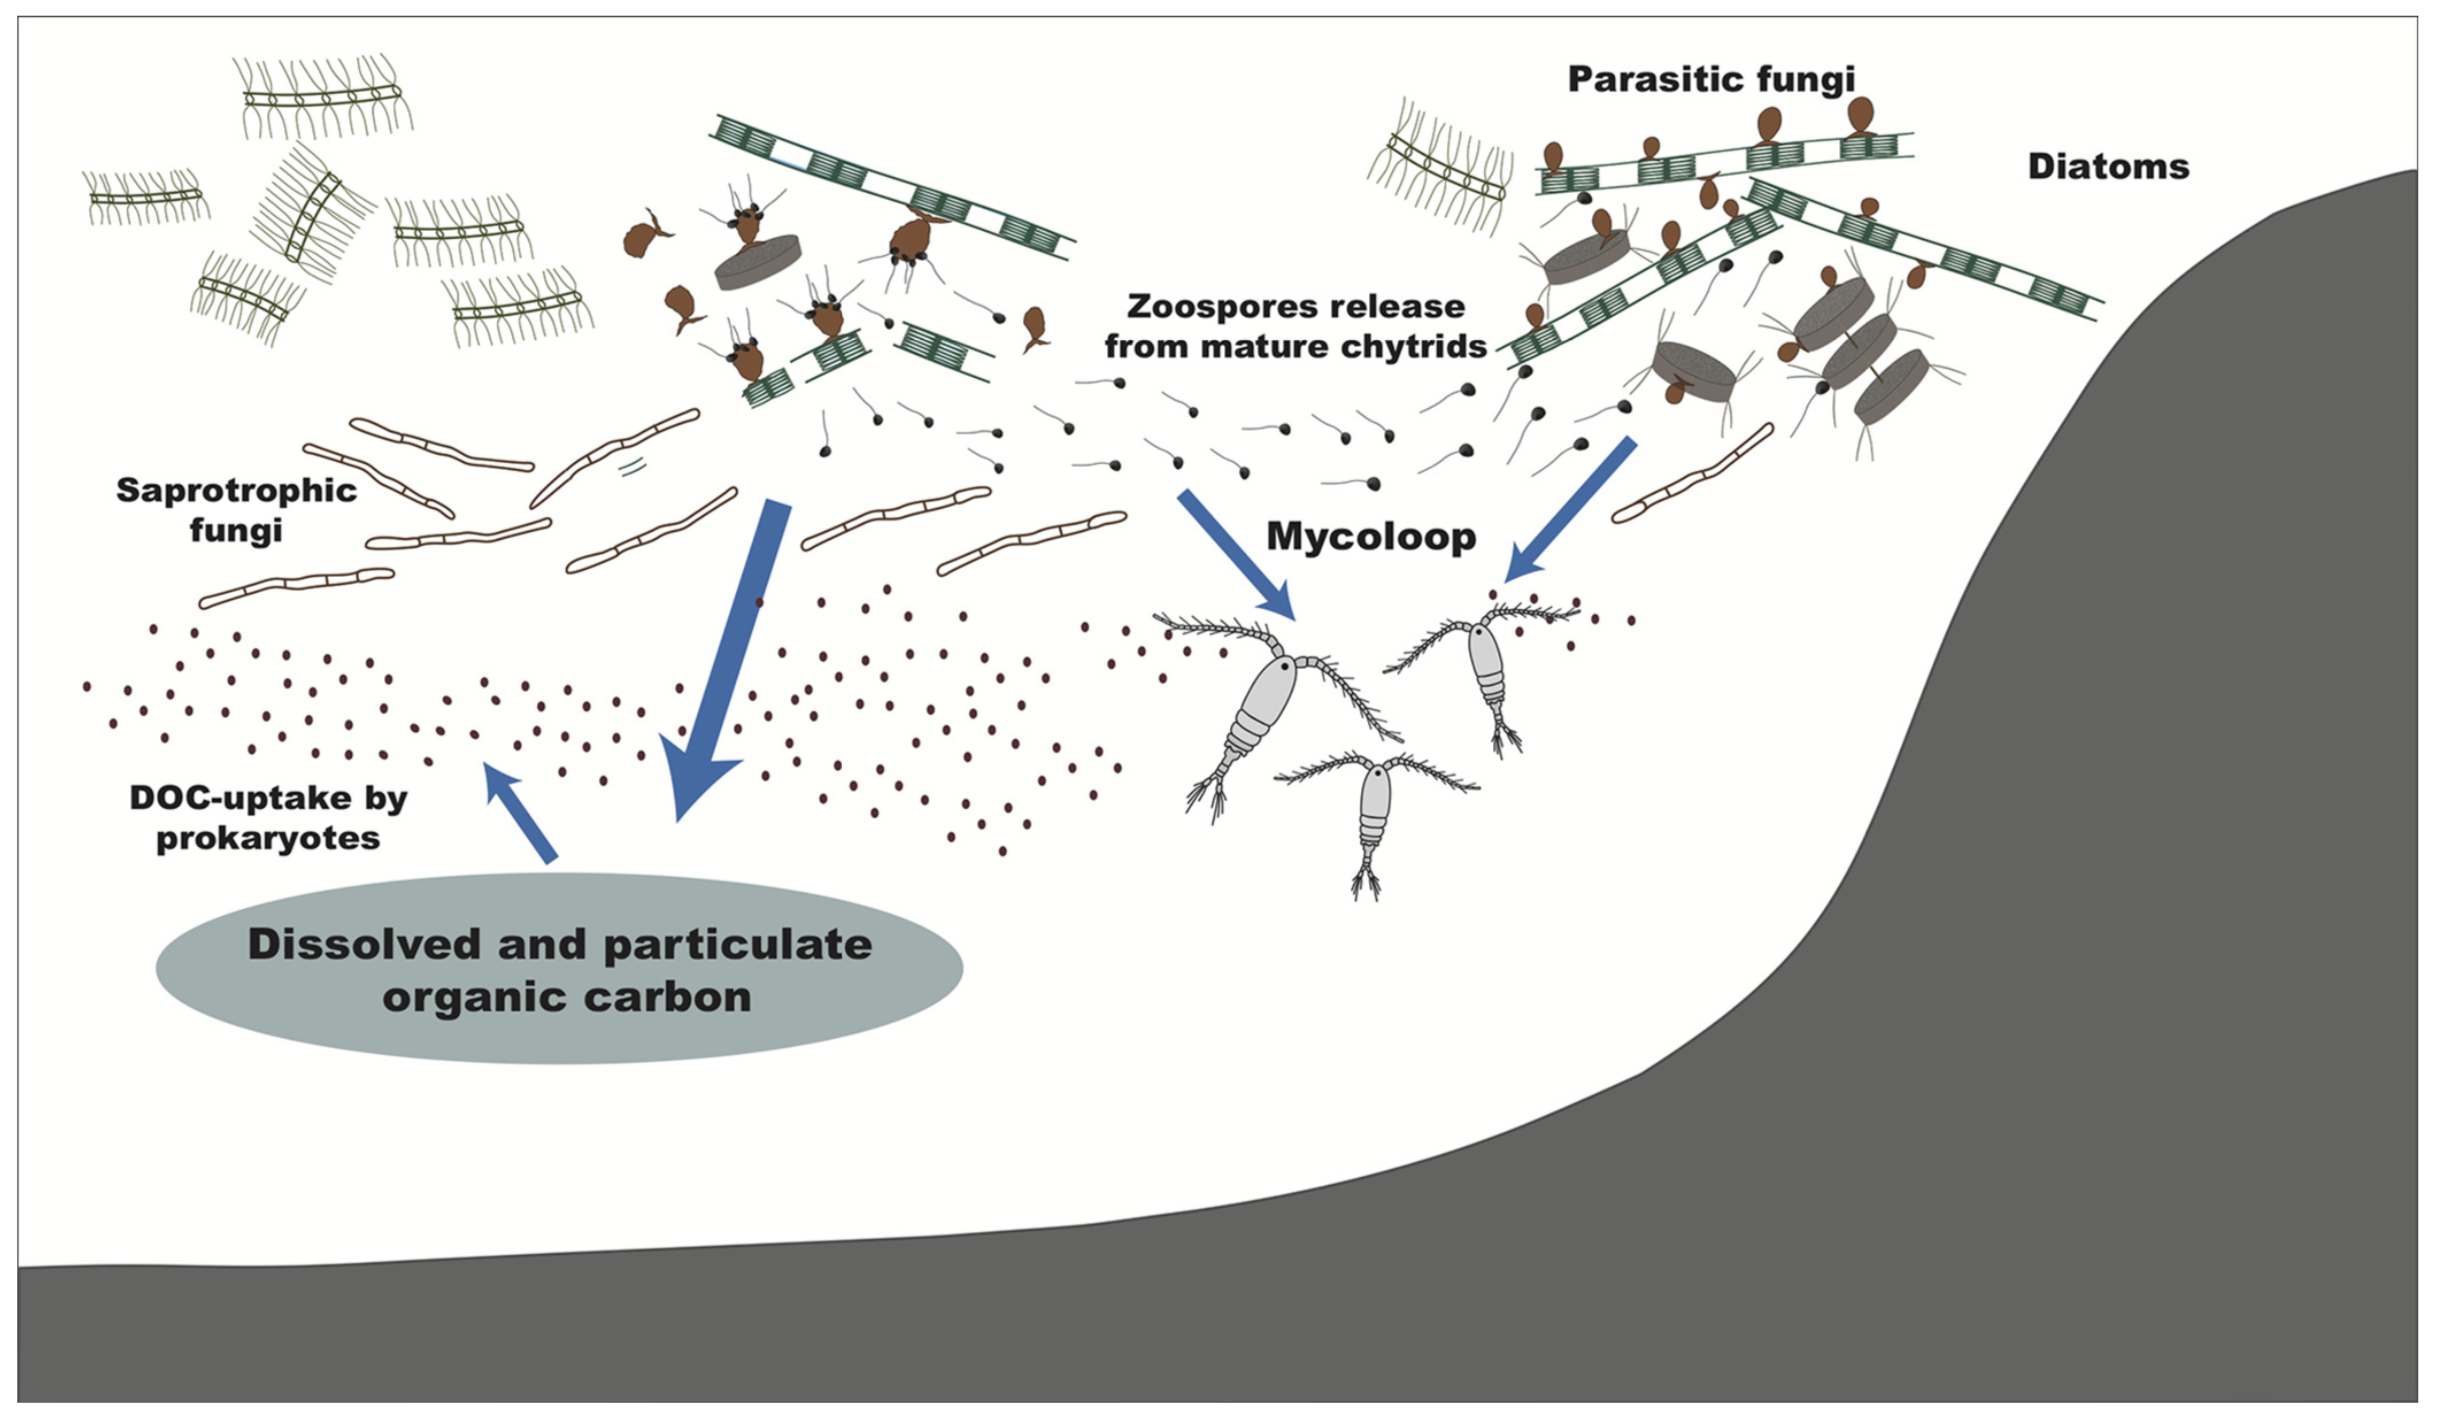 Roles of fungi in the marine carbon cycle by processing phytoplankton-derived organic matter. Parasitic fungi, as well as saprotrophic fungi, directly assimilate phytoplankton organic carbon. By releasing zoospores, the fungi bridge the trophic linkage to zooplankton, known as the mycoloop. By modifying the particulate and dissolved organic carbon, they can affect bacteria and the microbial loop. These processes may modify marine snow chemical composition and the subsequent functioning of the biological carbon pump.  Amend et al. 2019.